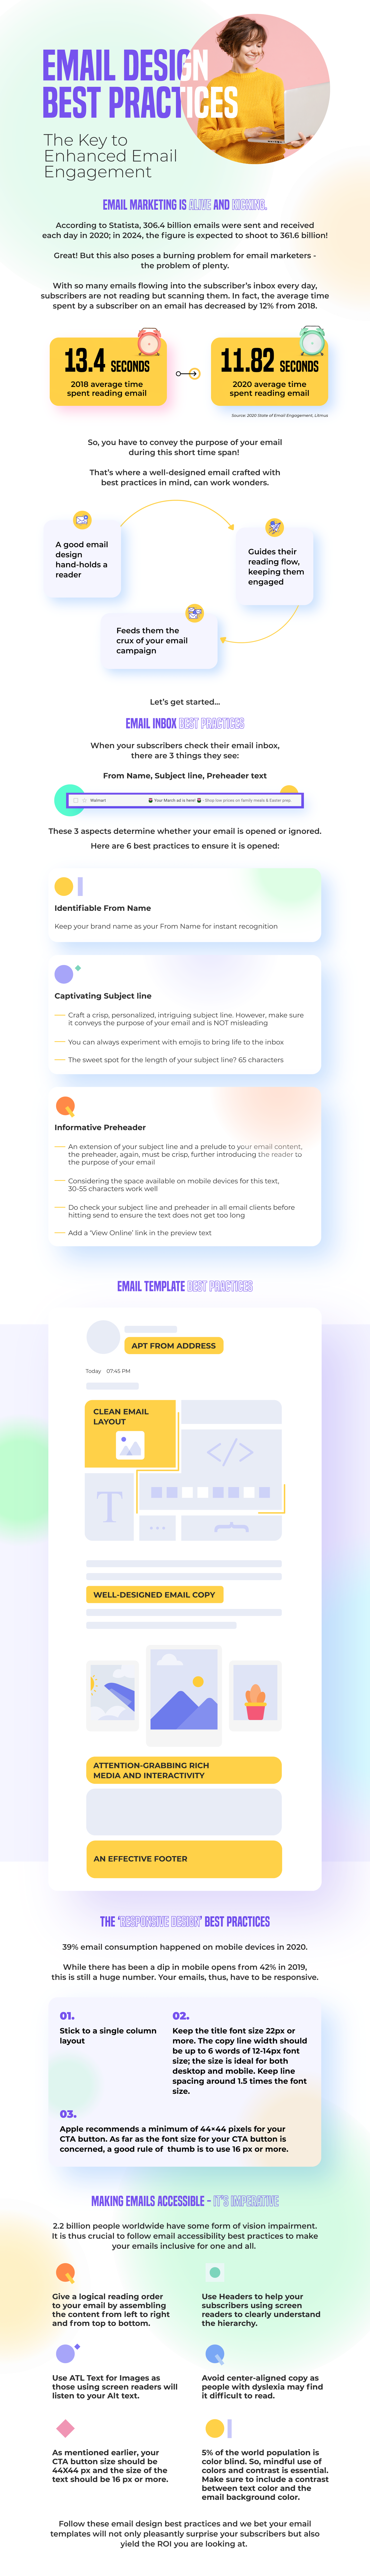 Email Design Best Practices - Email Uplers